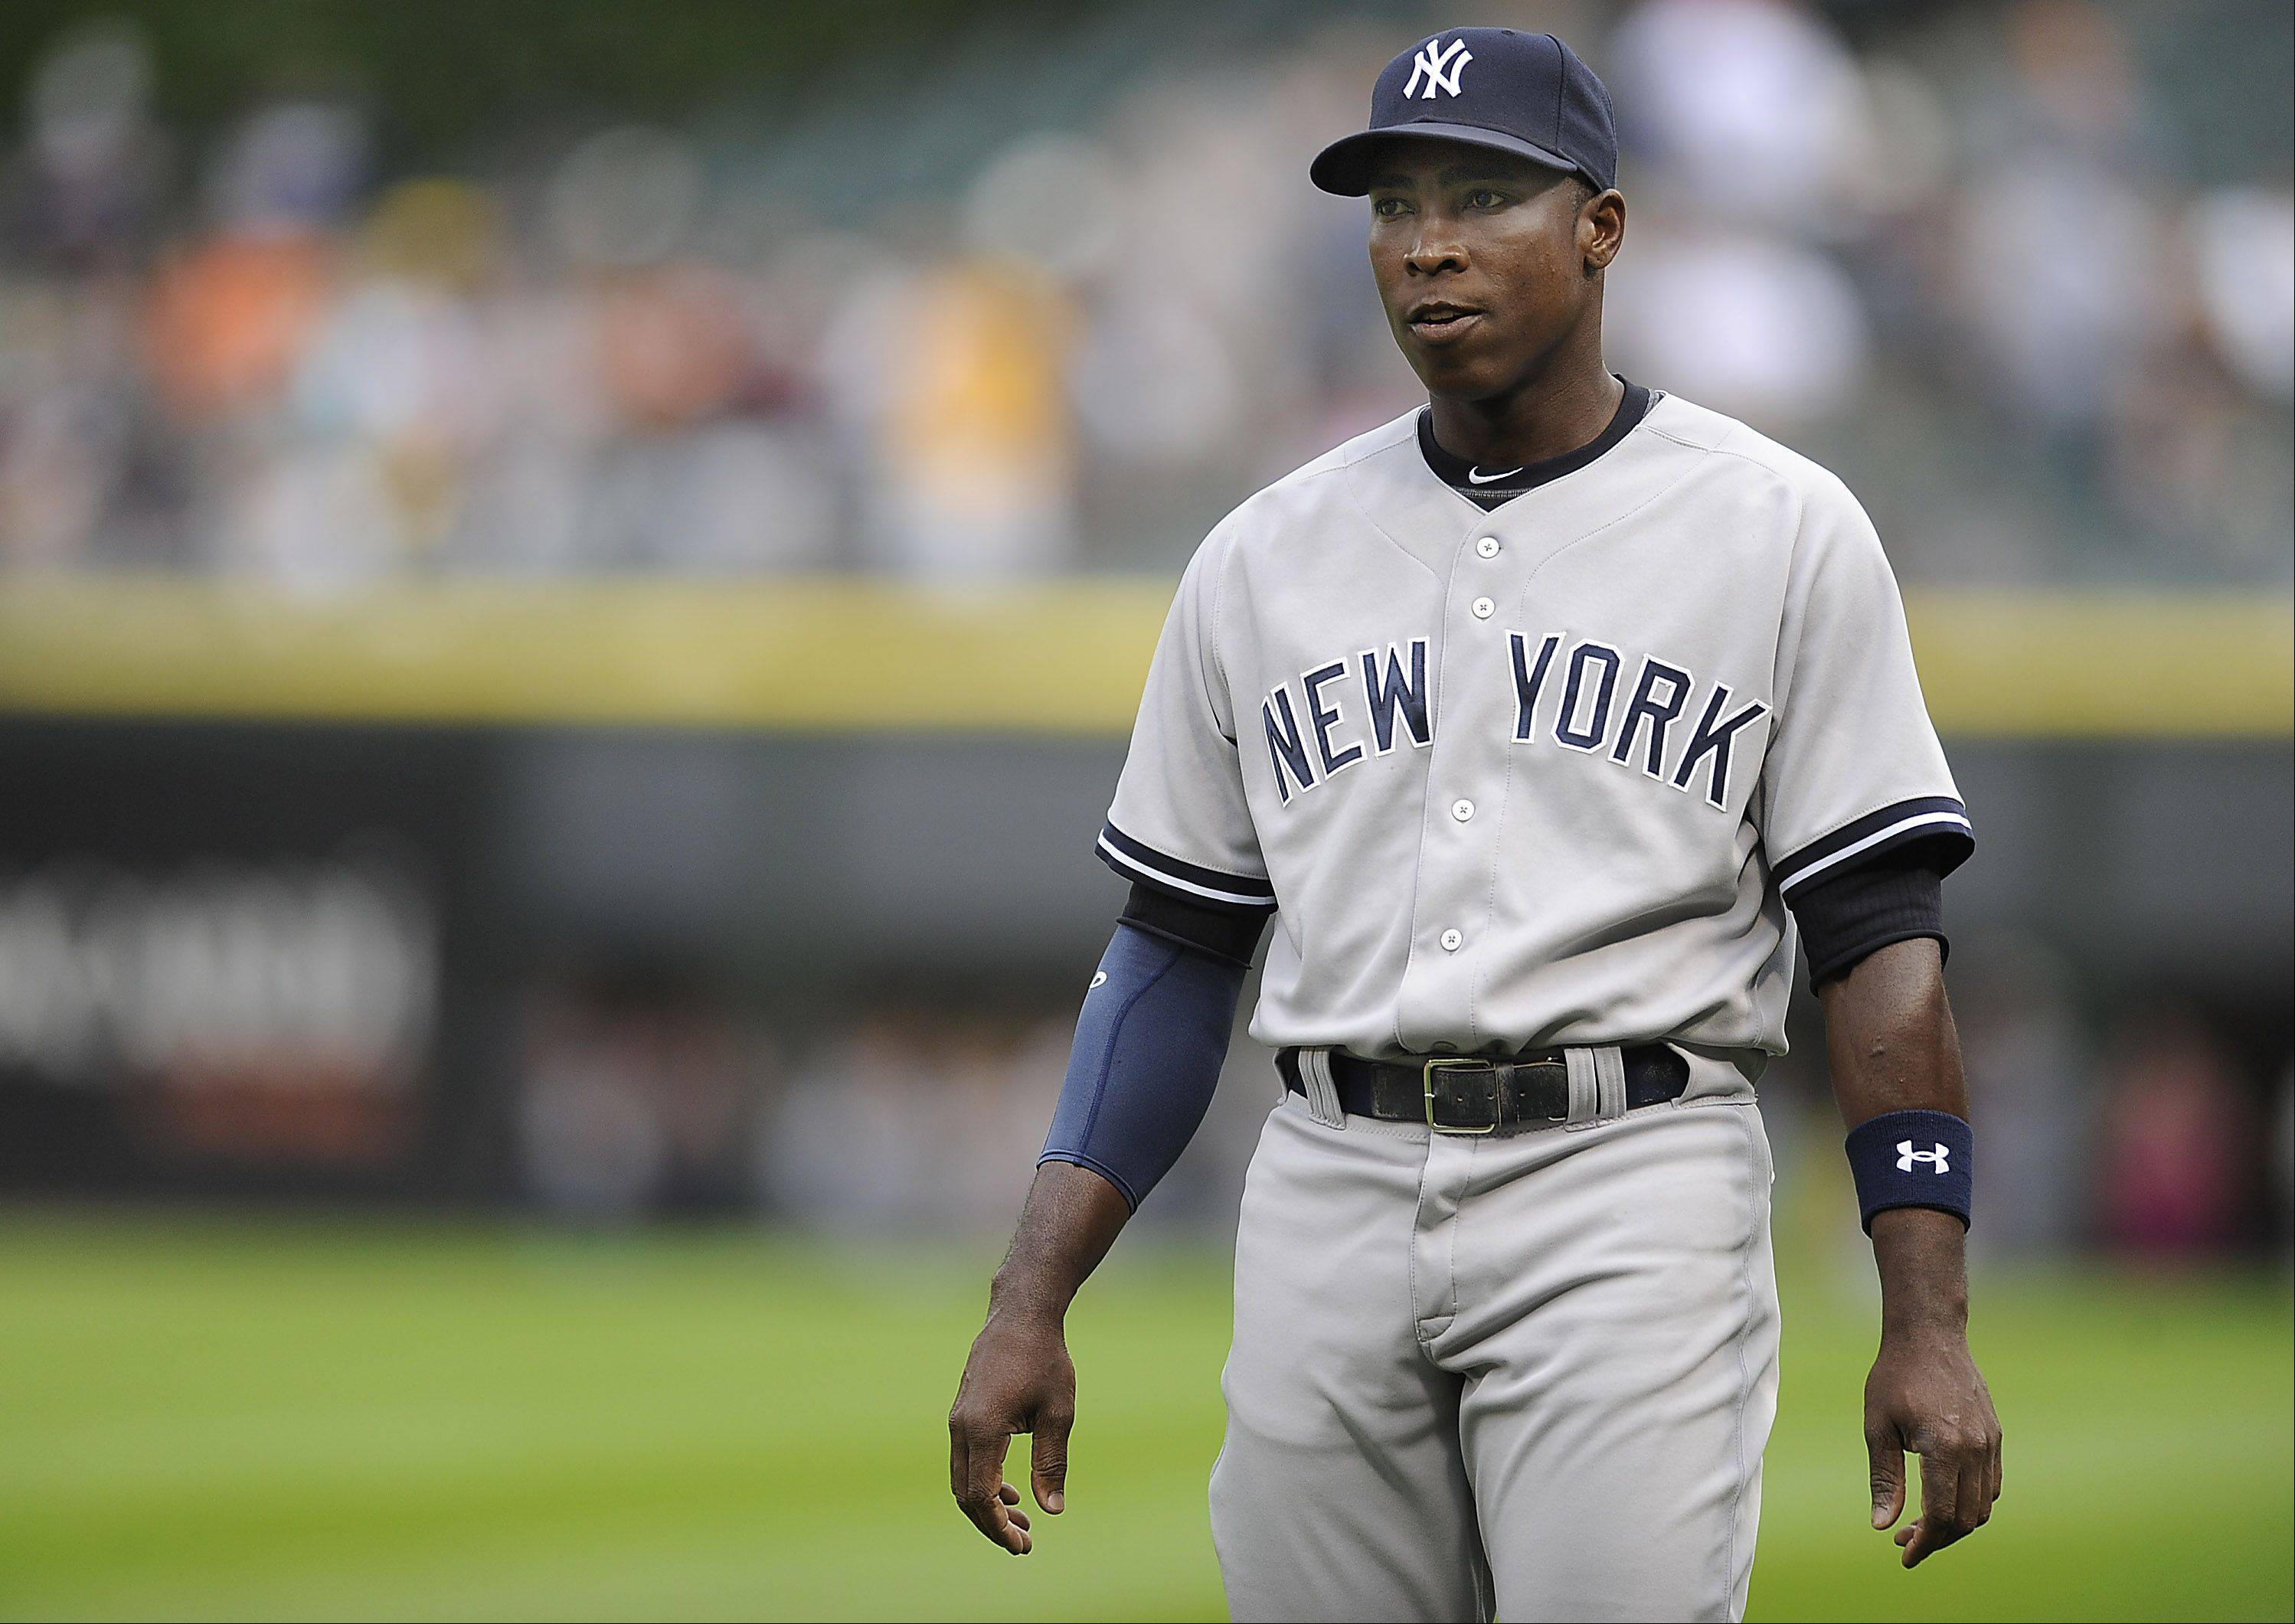 Former Cub Alfonso Soriano, now back with the Yankees, was happy to return to Chicago on Monday.